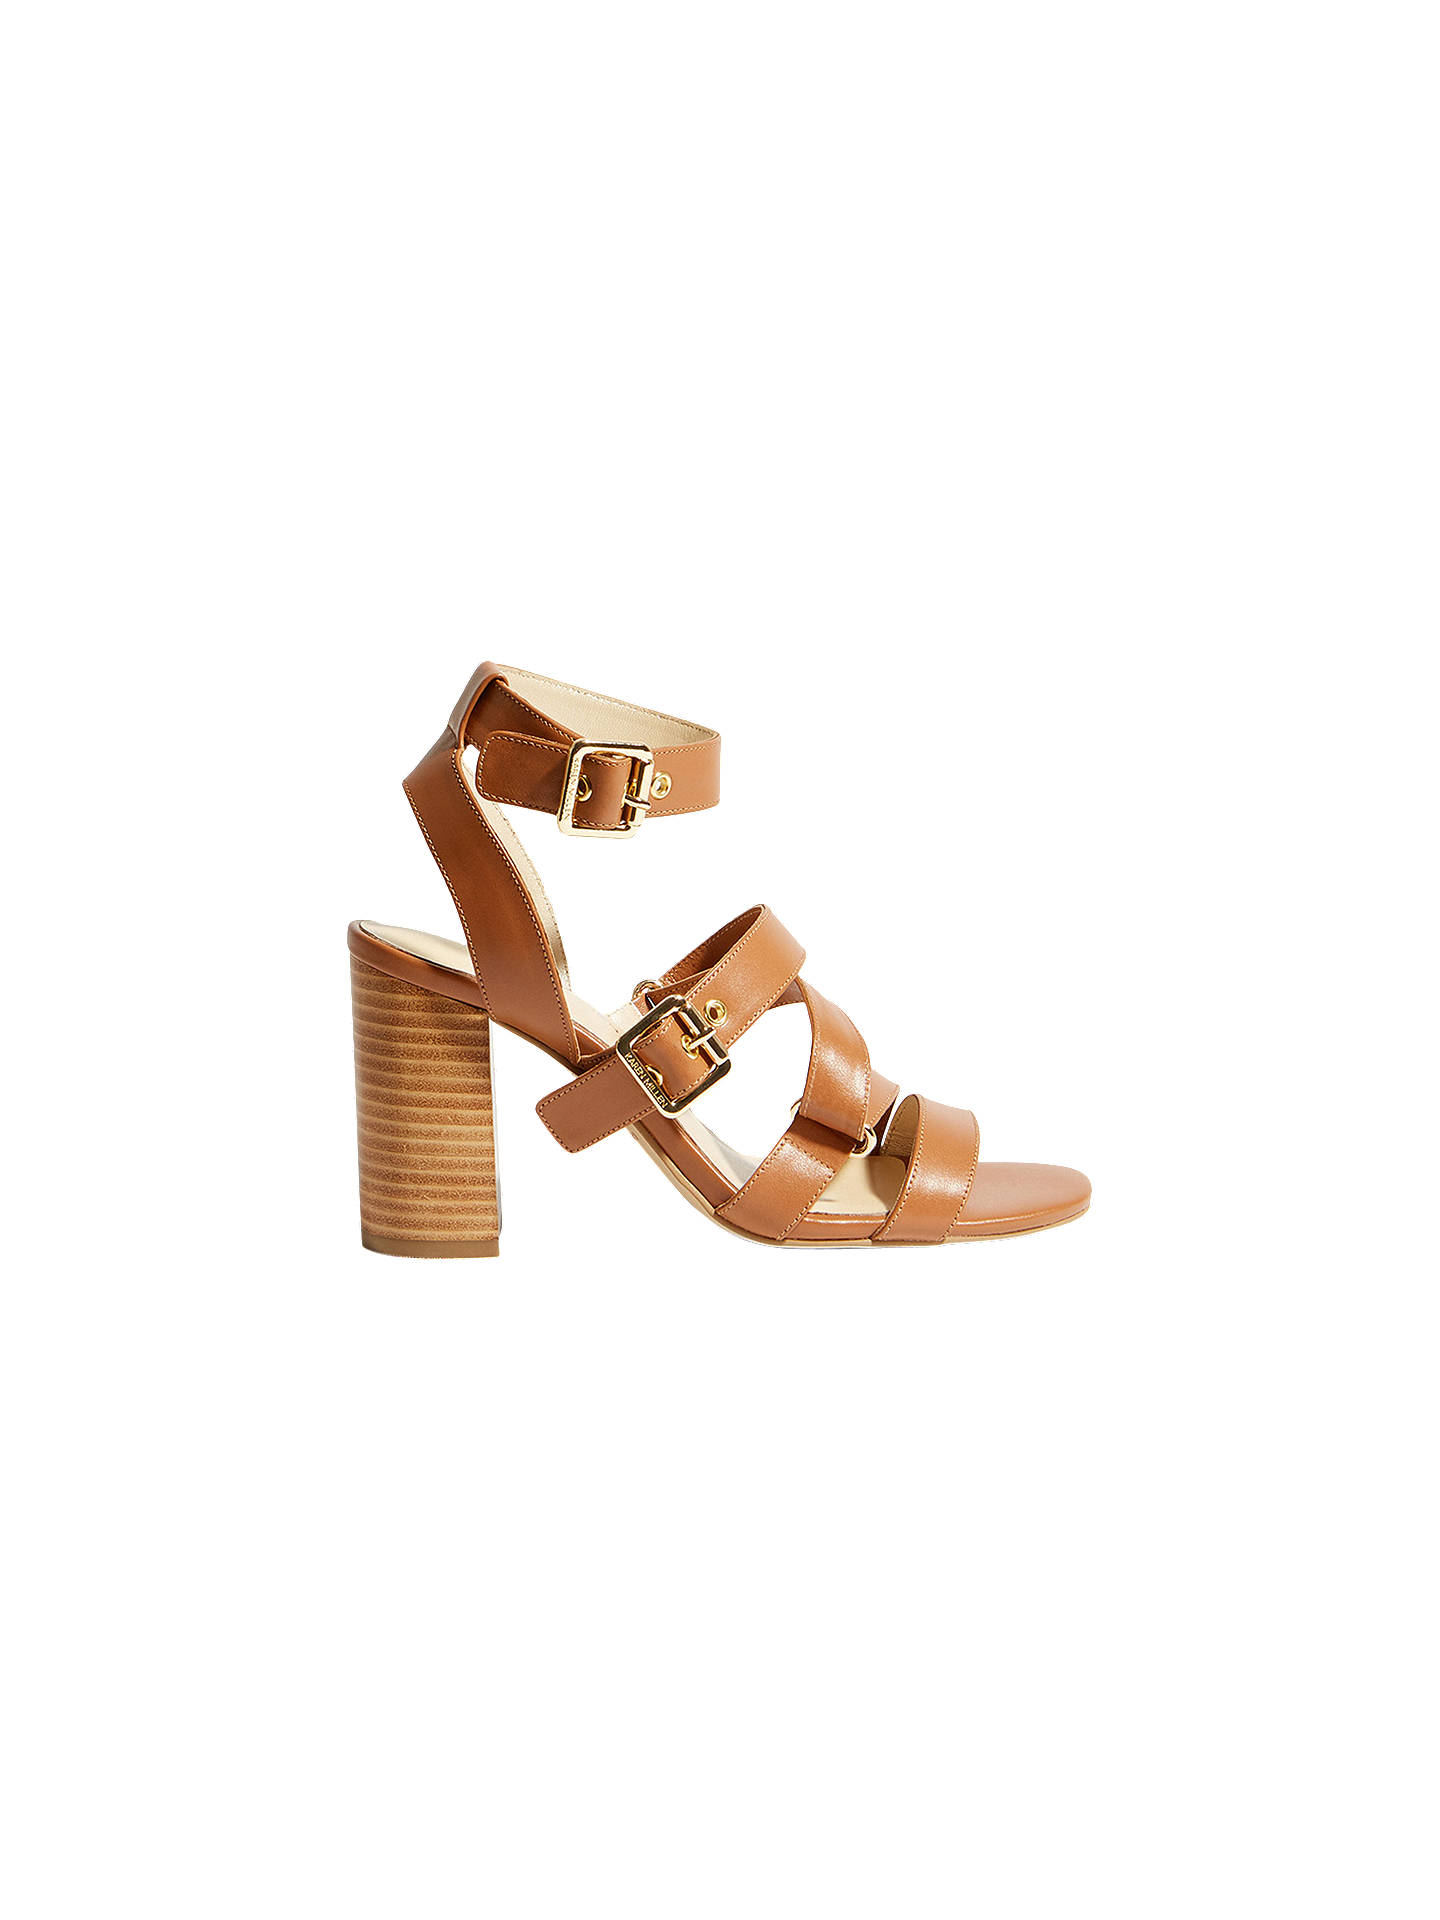 c30addfbe2af Buy Karen Millen Strappy Block Heel Sandals